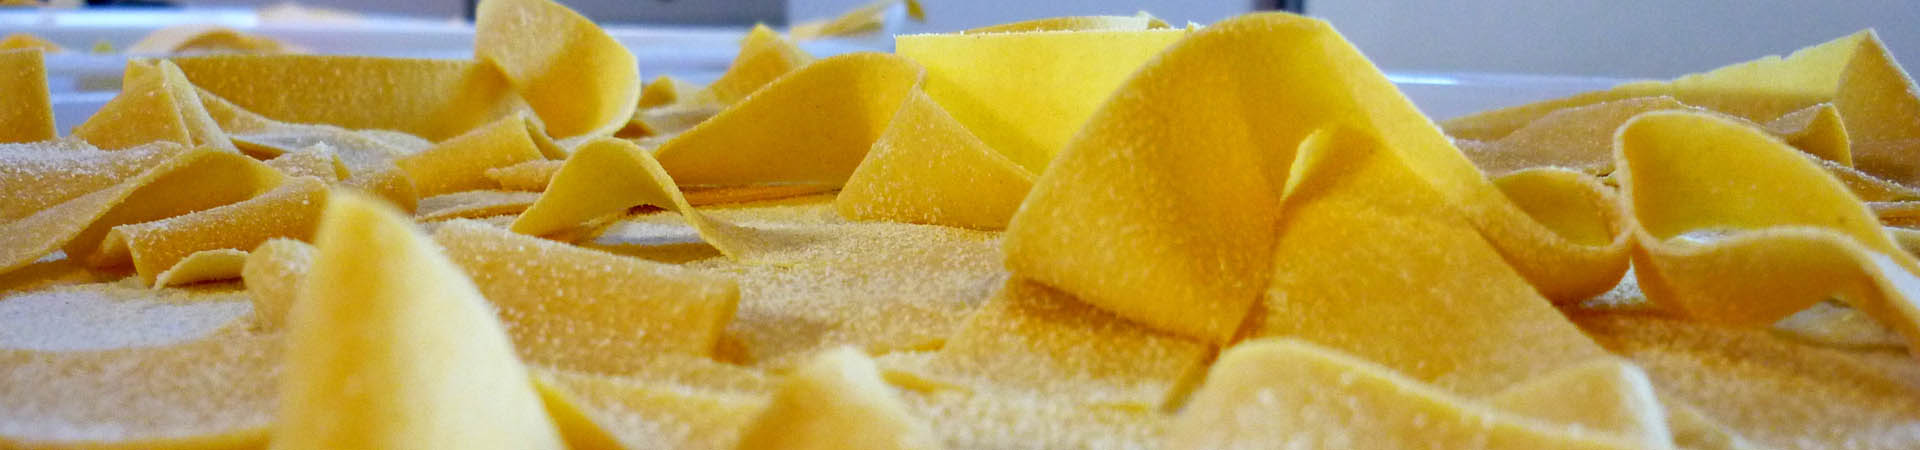 5-pappardelle1